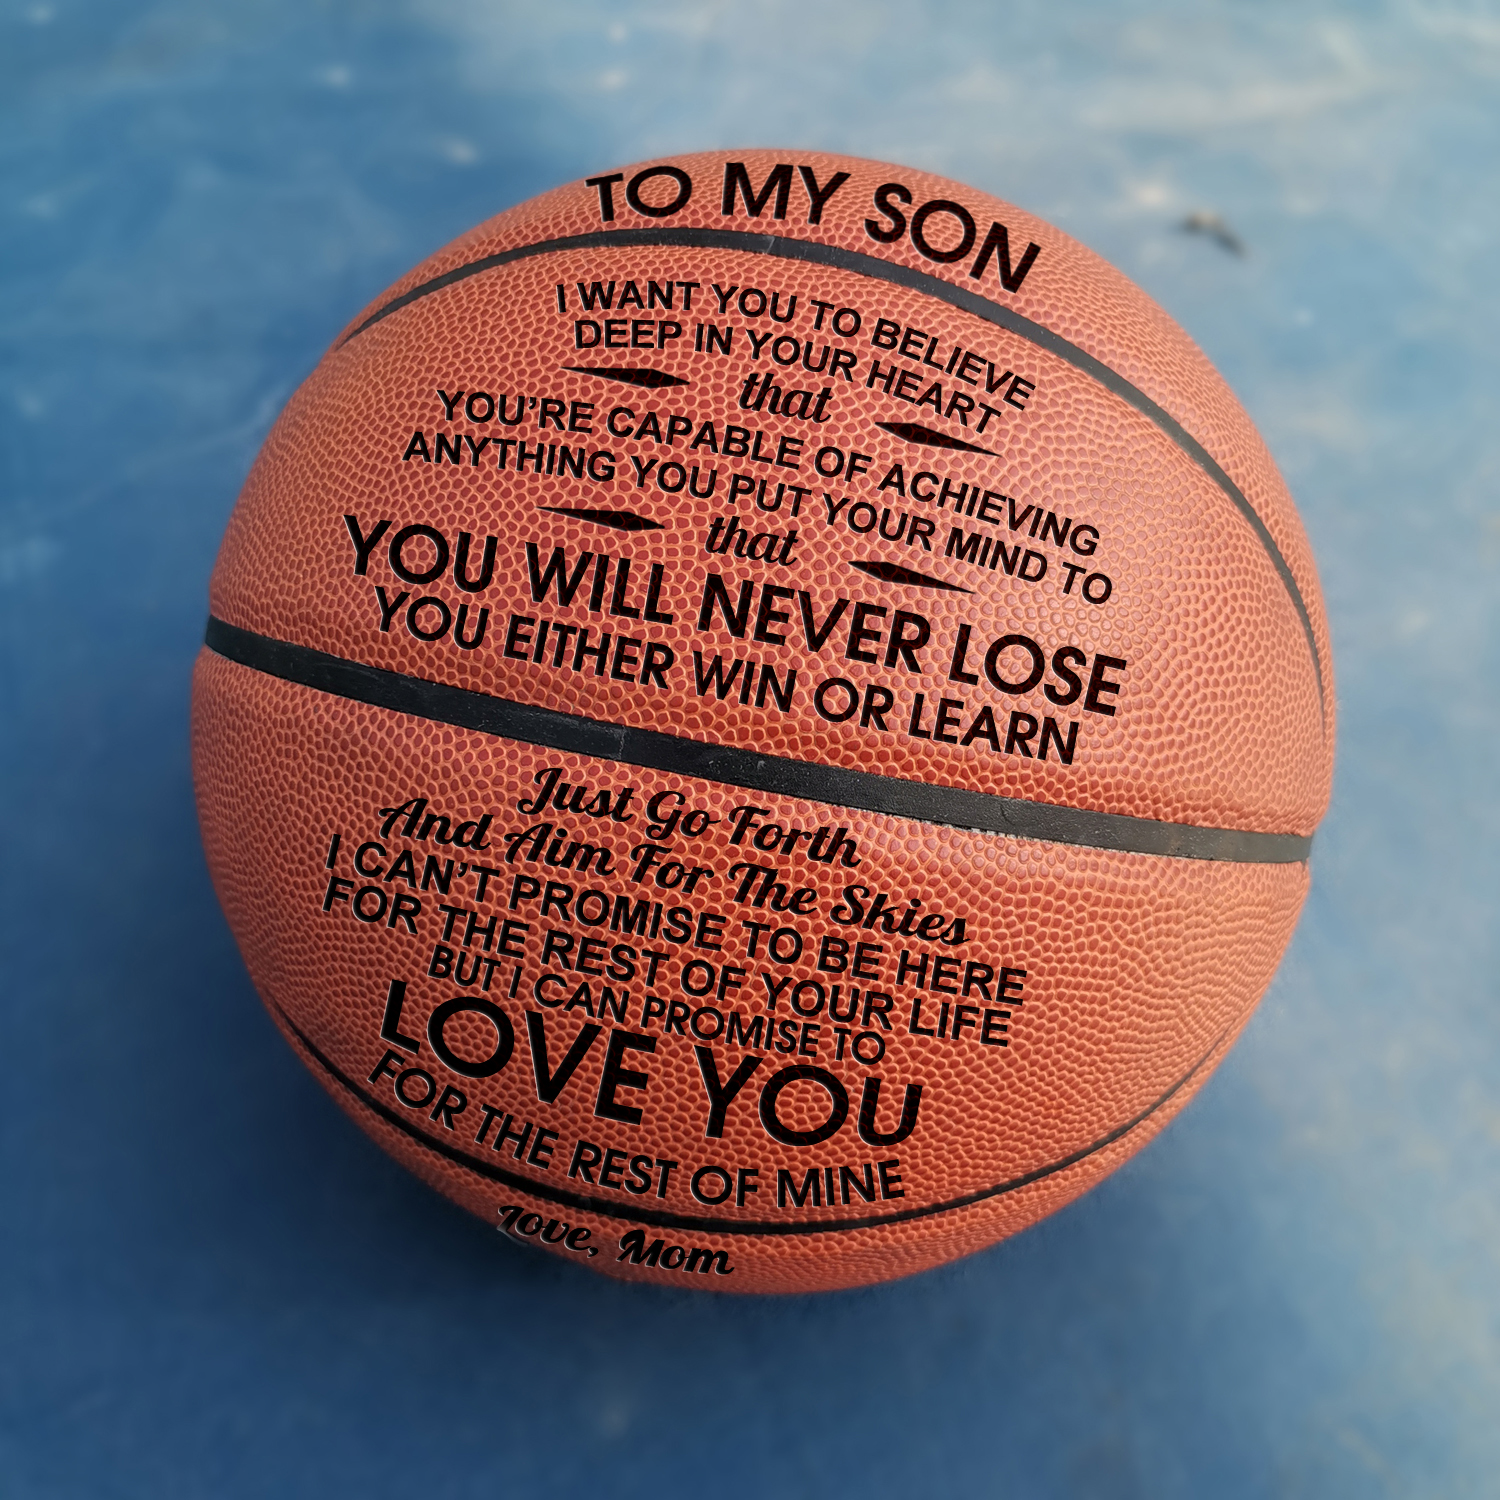 Mom To My Son You Basketball Wholesale Or Retail Cheap Basketball Ball Official Size7 Basketball With Net Bag+ Needle